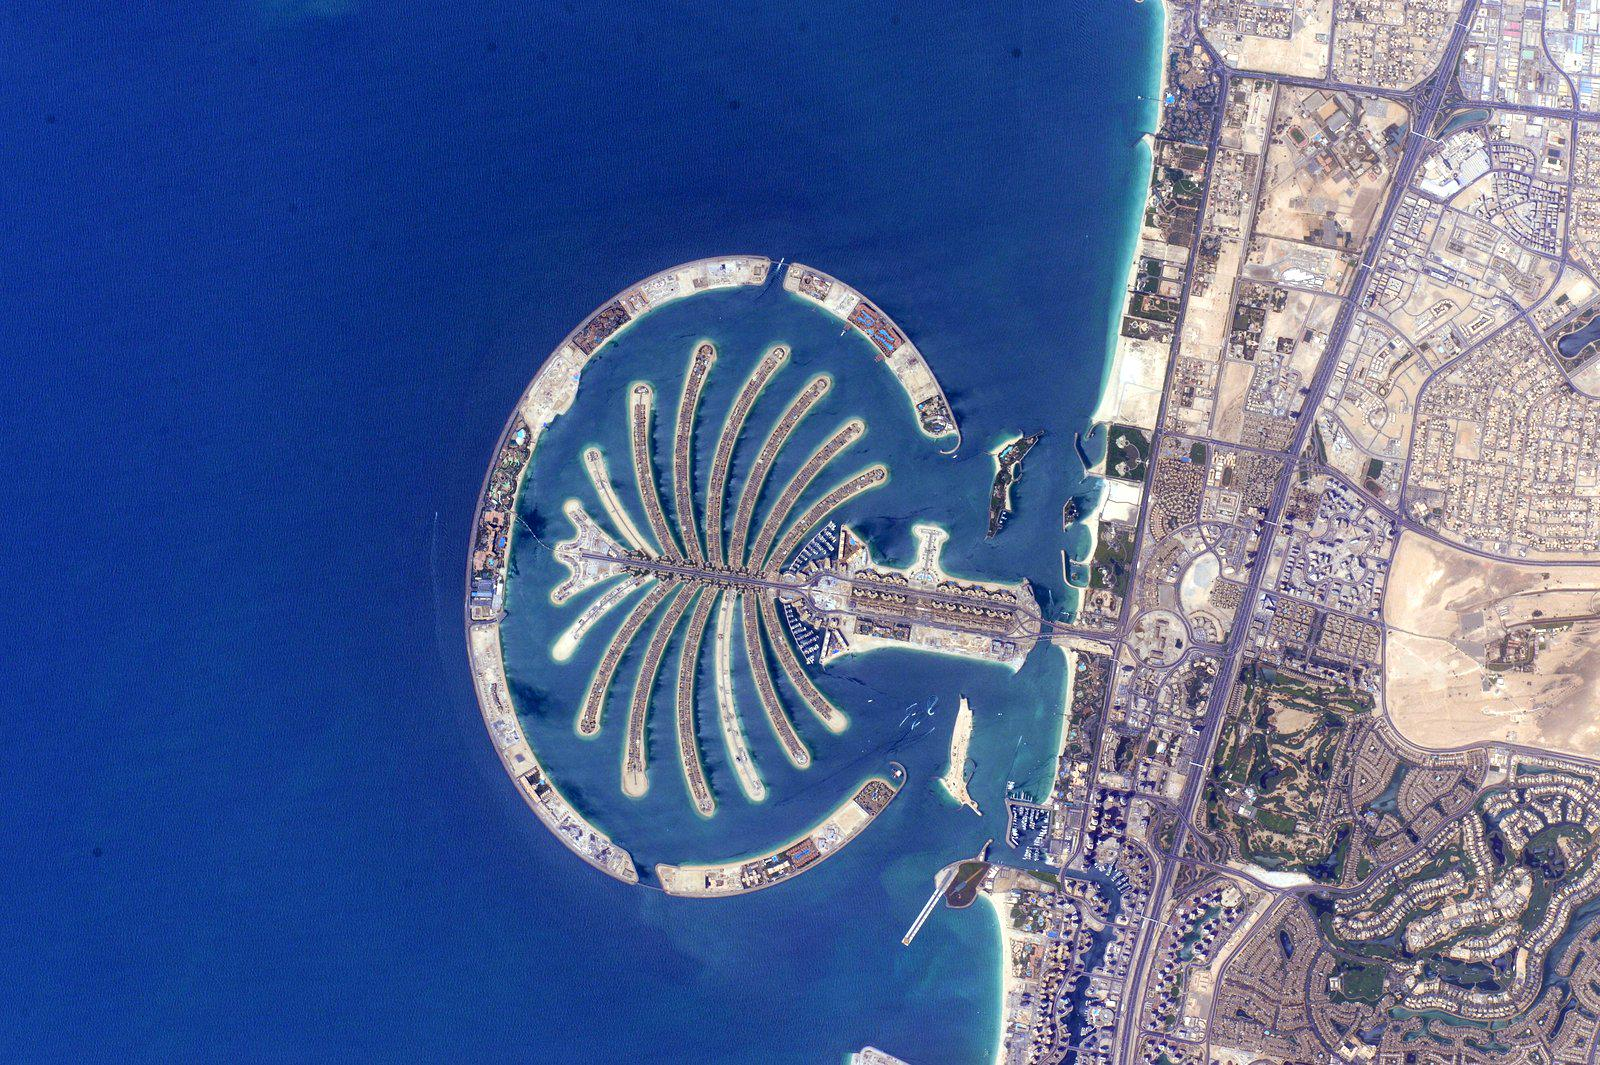 Good afternoon #Dubai. You look much different than when I was there 25 years ago. http://t.co/EeF1DD6O4l